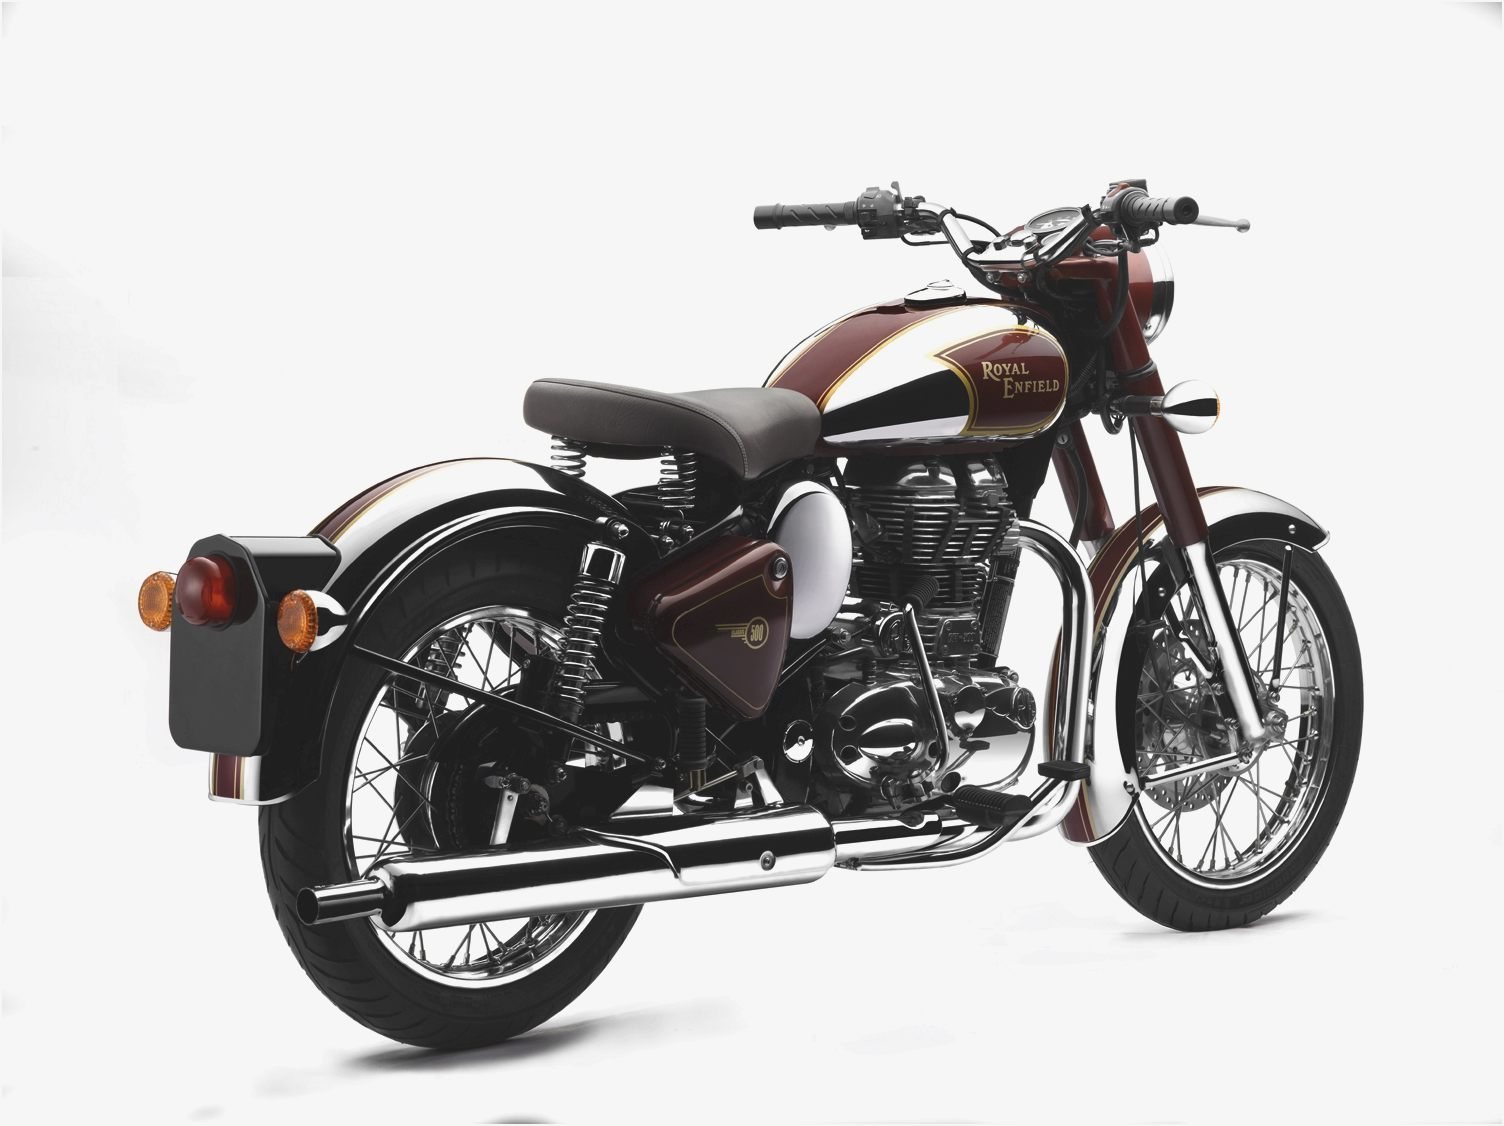 Royal Enfield Bullet C5 Classic EFI 2010 images #127521